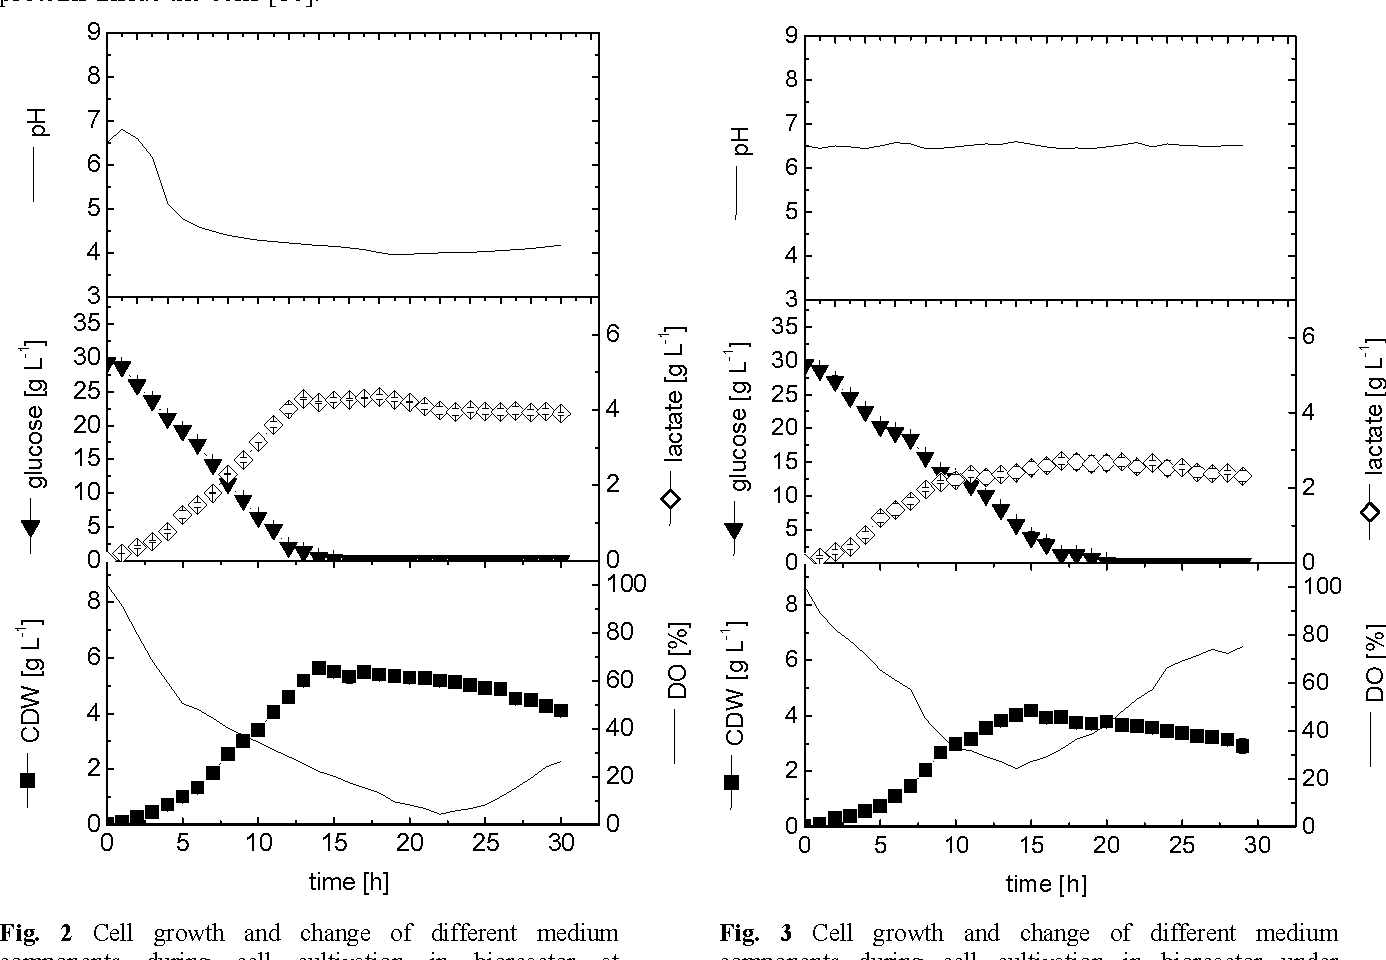 Fig. 3 Cell growth and change of different medium components during cell cultivation in bioreactor under controlled pH